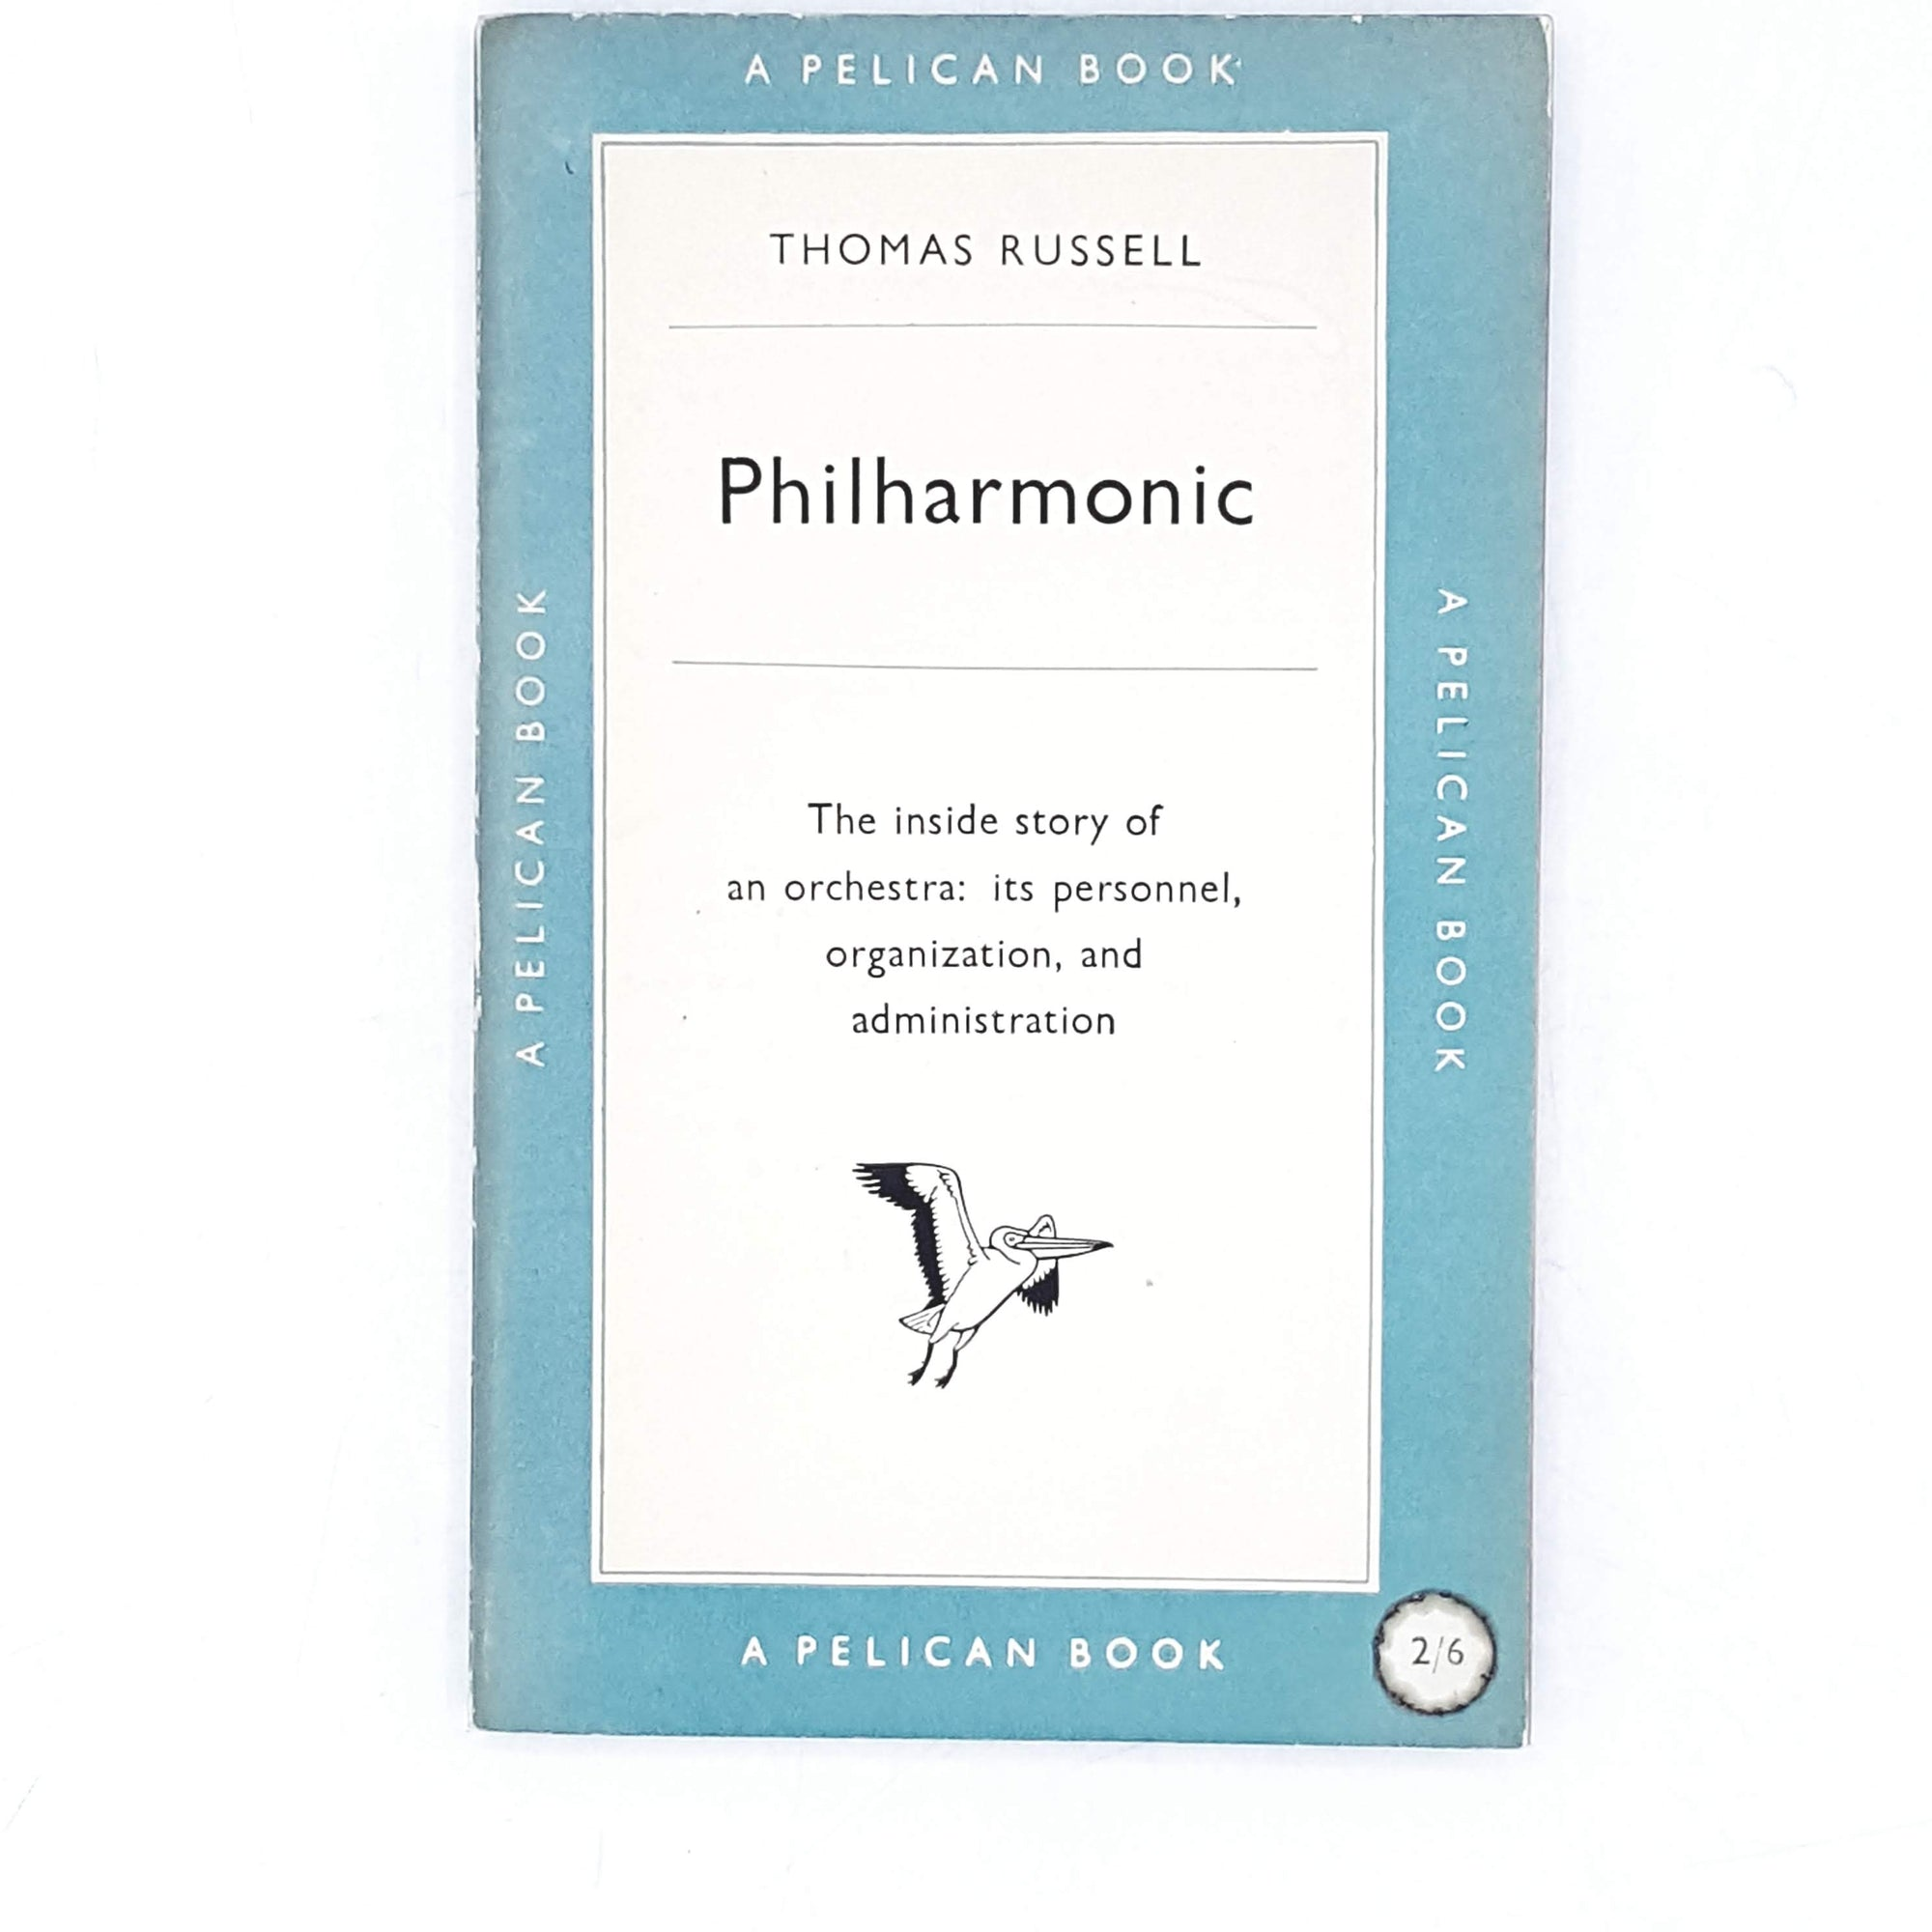 Vintage Pelican: Philharmonic by Thomas Russell 1953